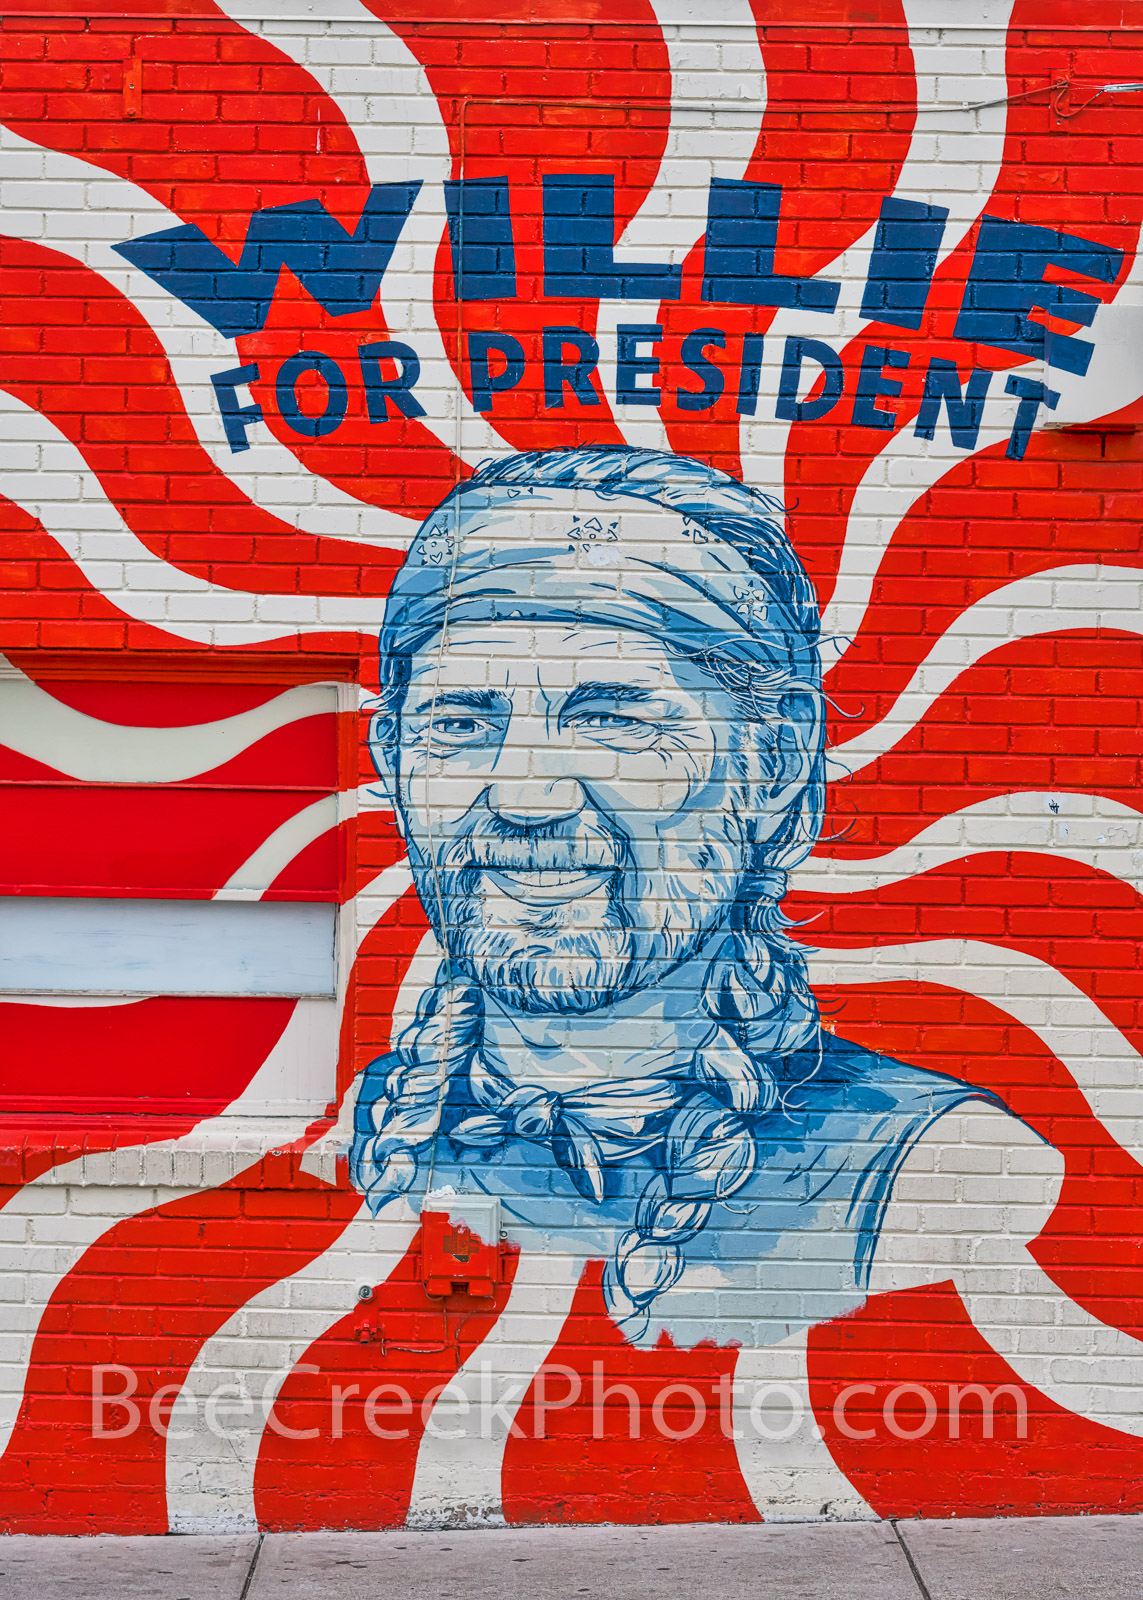 willie for president mural, austin texas, austin downtown, congress ave, soco, south congress, willie nelson, austin murals, murals, vertical, art, , photo